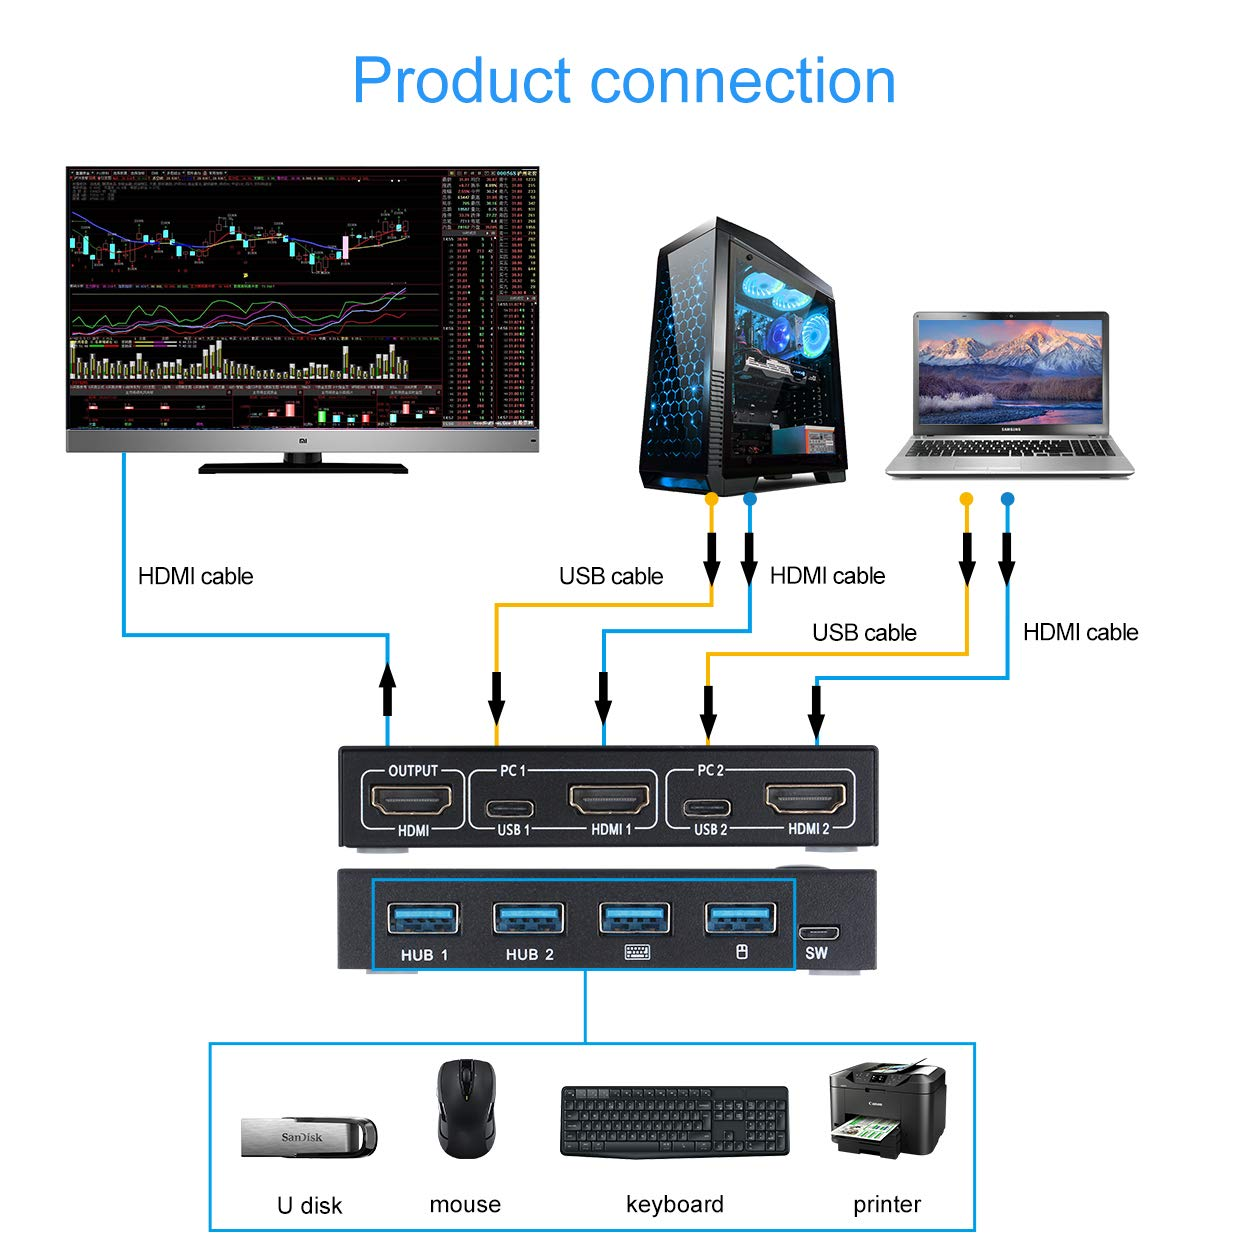 2 Ports USB HDMI KVM Switch Box Video Display USB Switch Splitter For 2 PC Sharing Keyboard Mouse Printer Plug And Paly enlarge